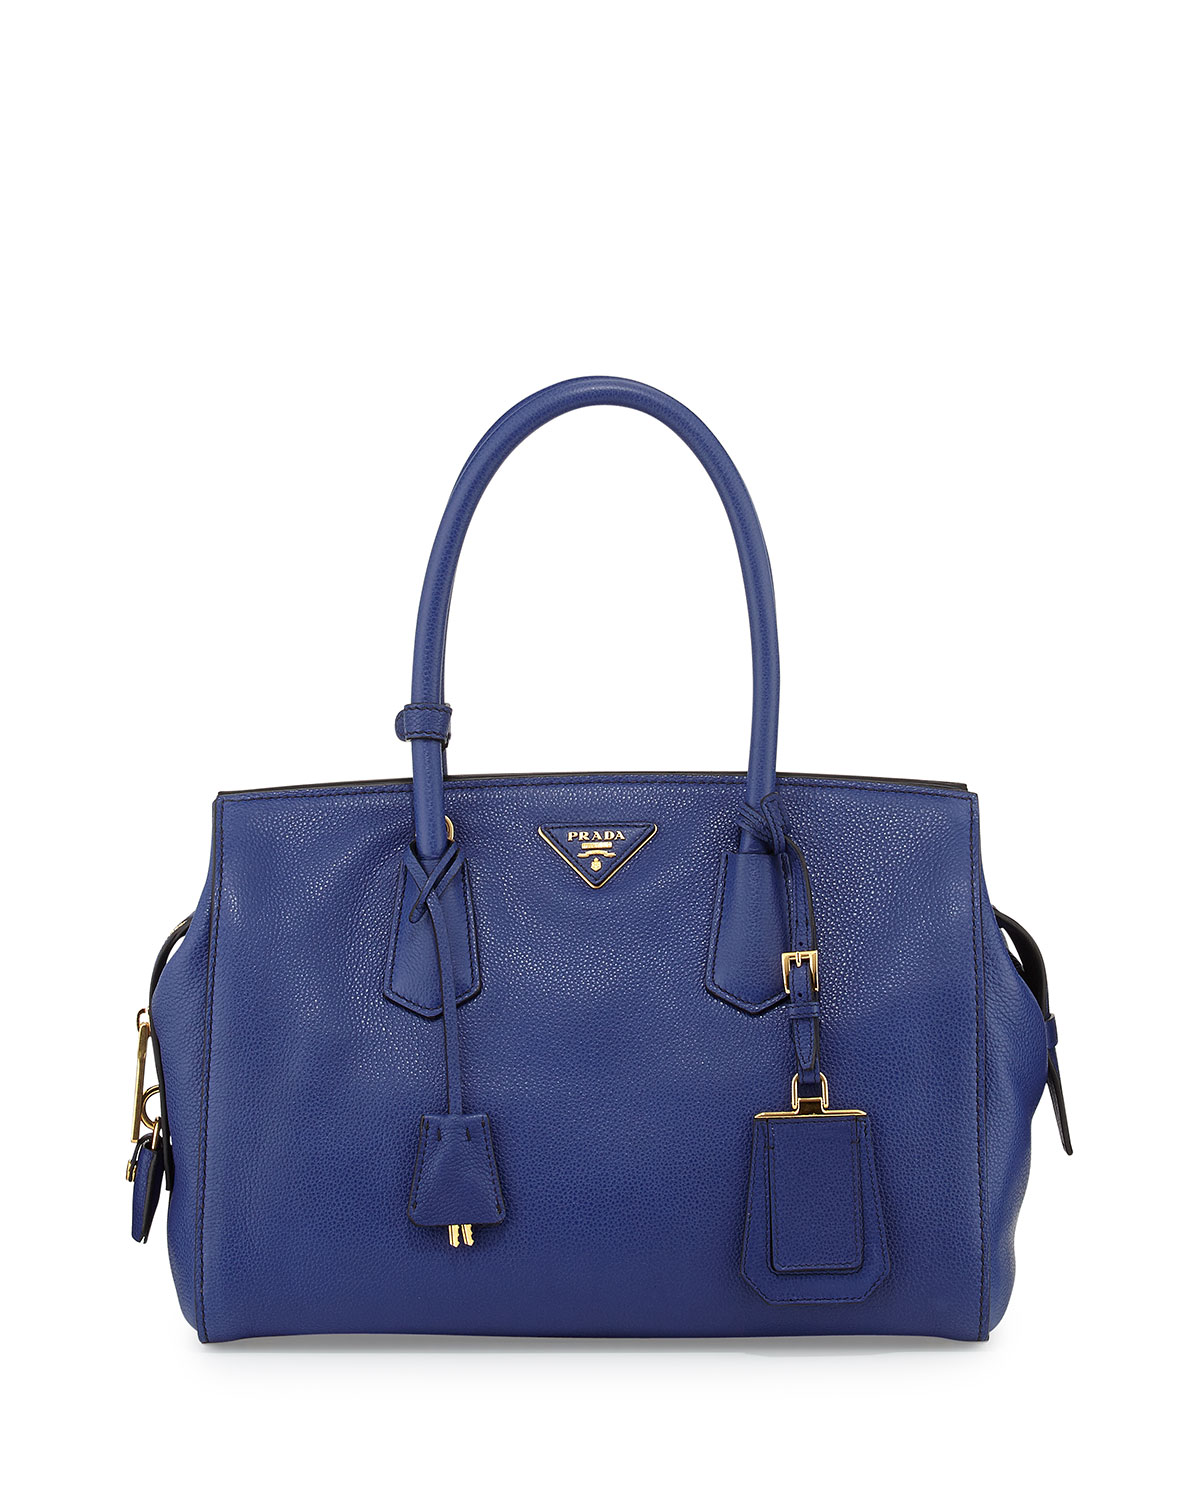 where can i buy prada online - Prada Pre-Fall 2014 Bag Collection featuring new Double Totes in ...